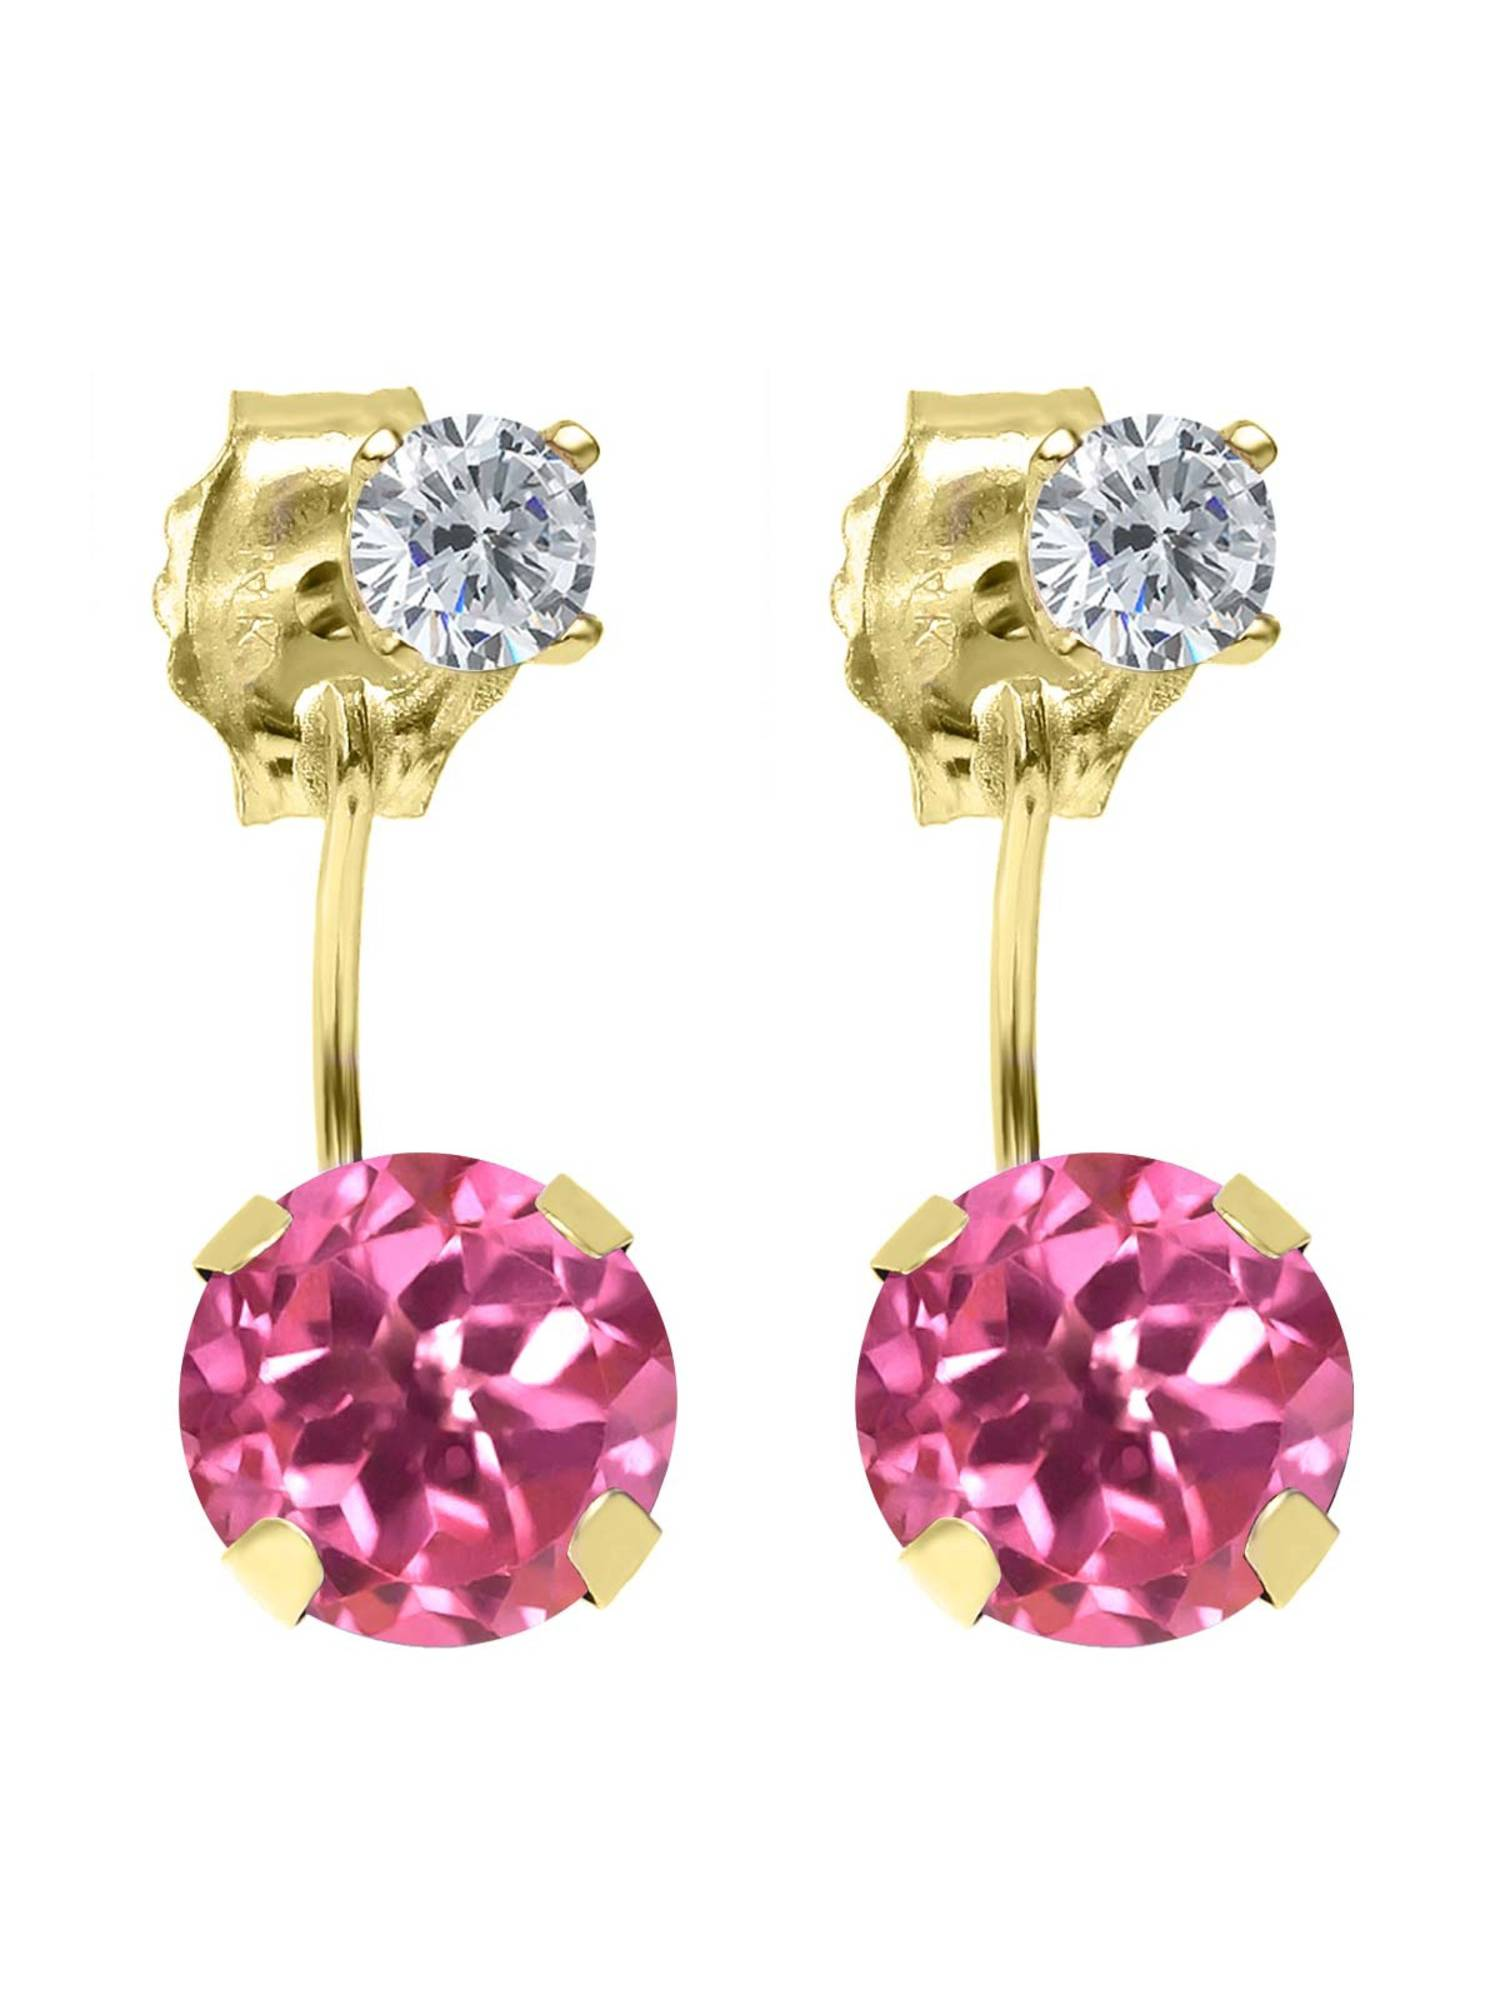 2.24 Ct Round Pink Mystic Topaz G H Diamond 14K Yellow Gold Earrings by